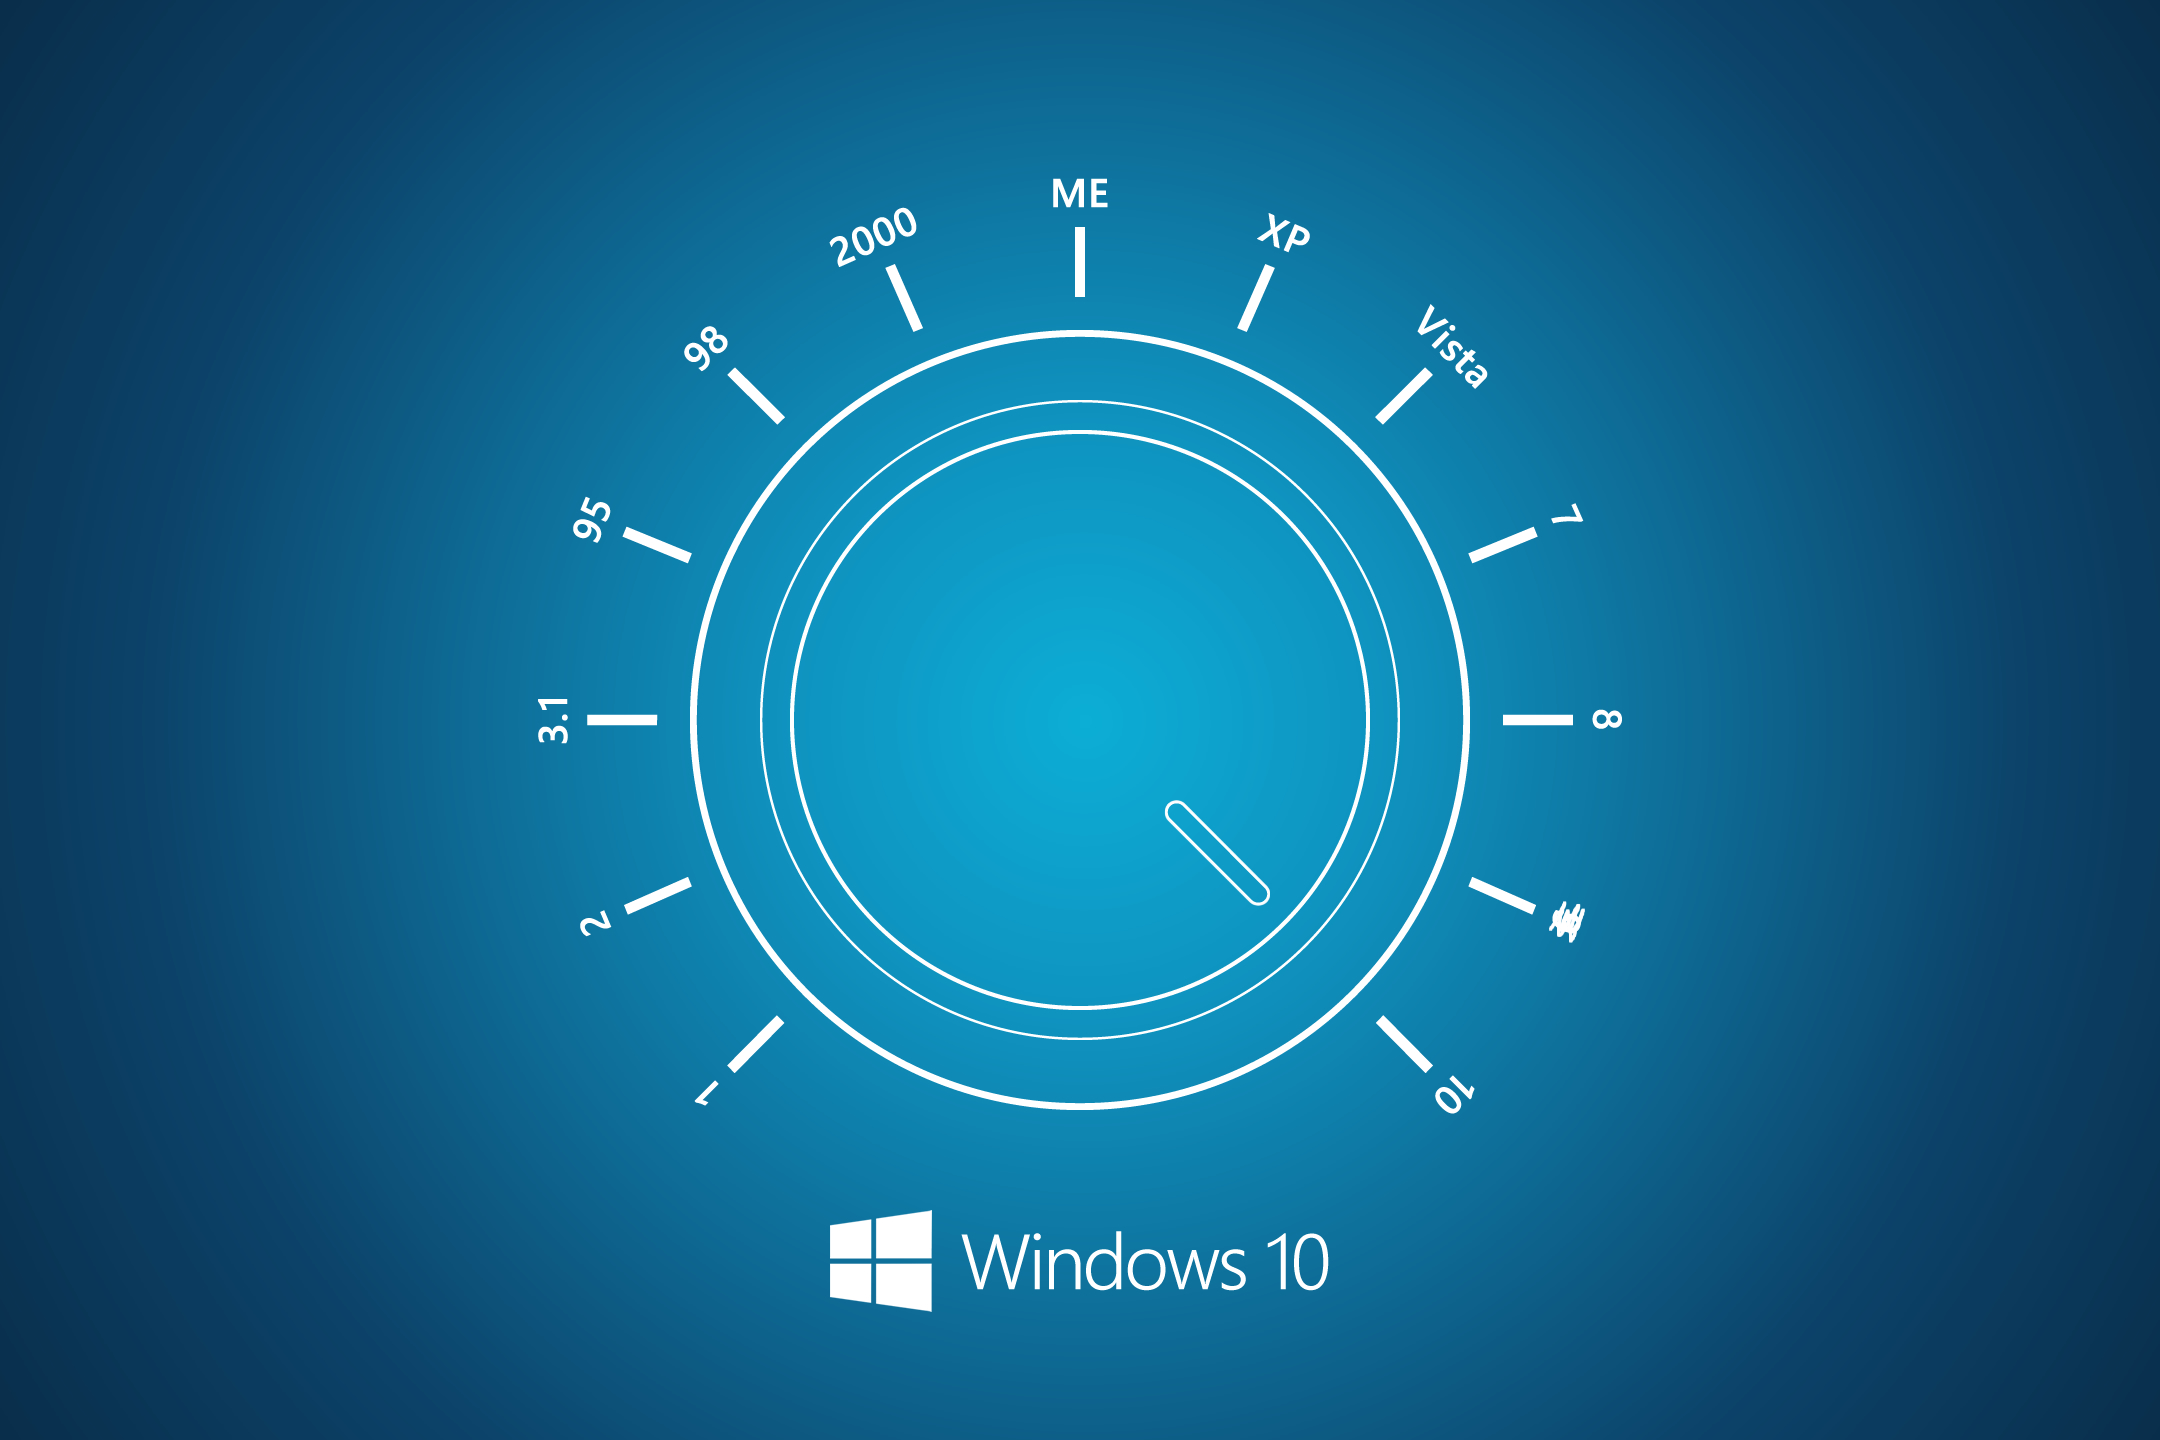 windows 10 wallpaper while you wait for a new build | it pro